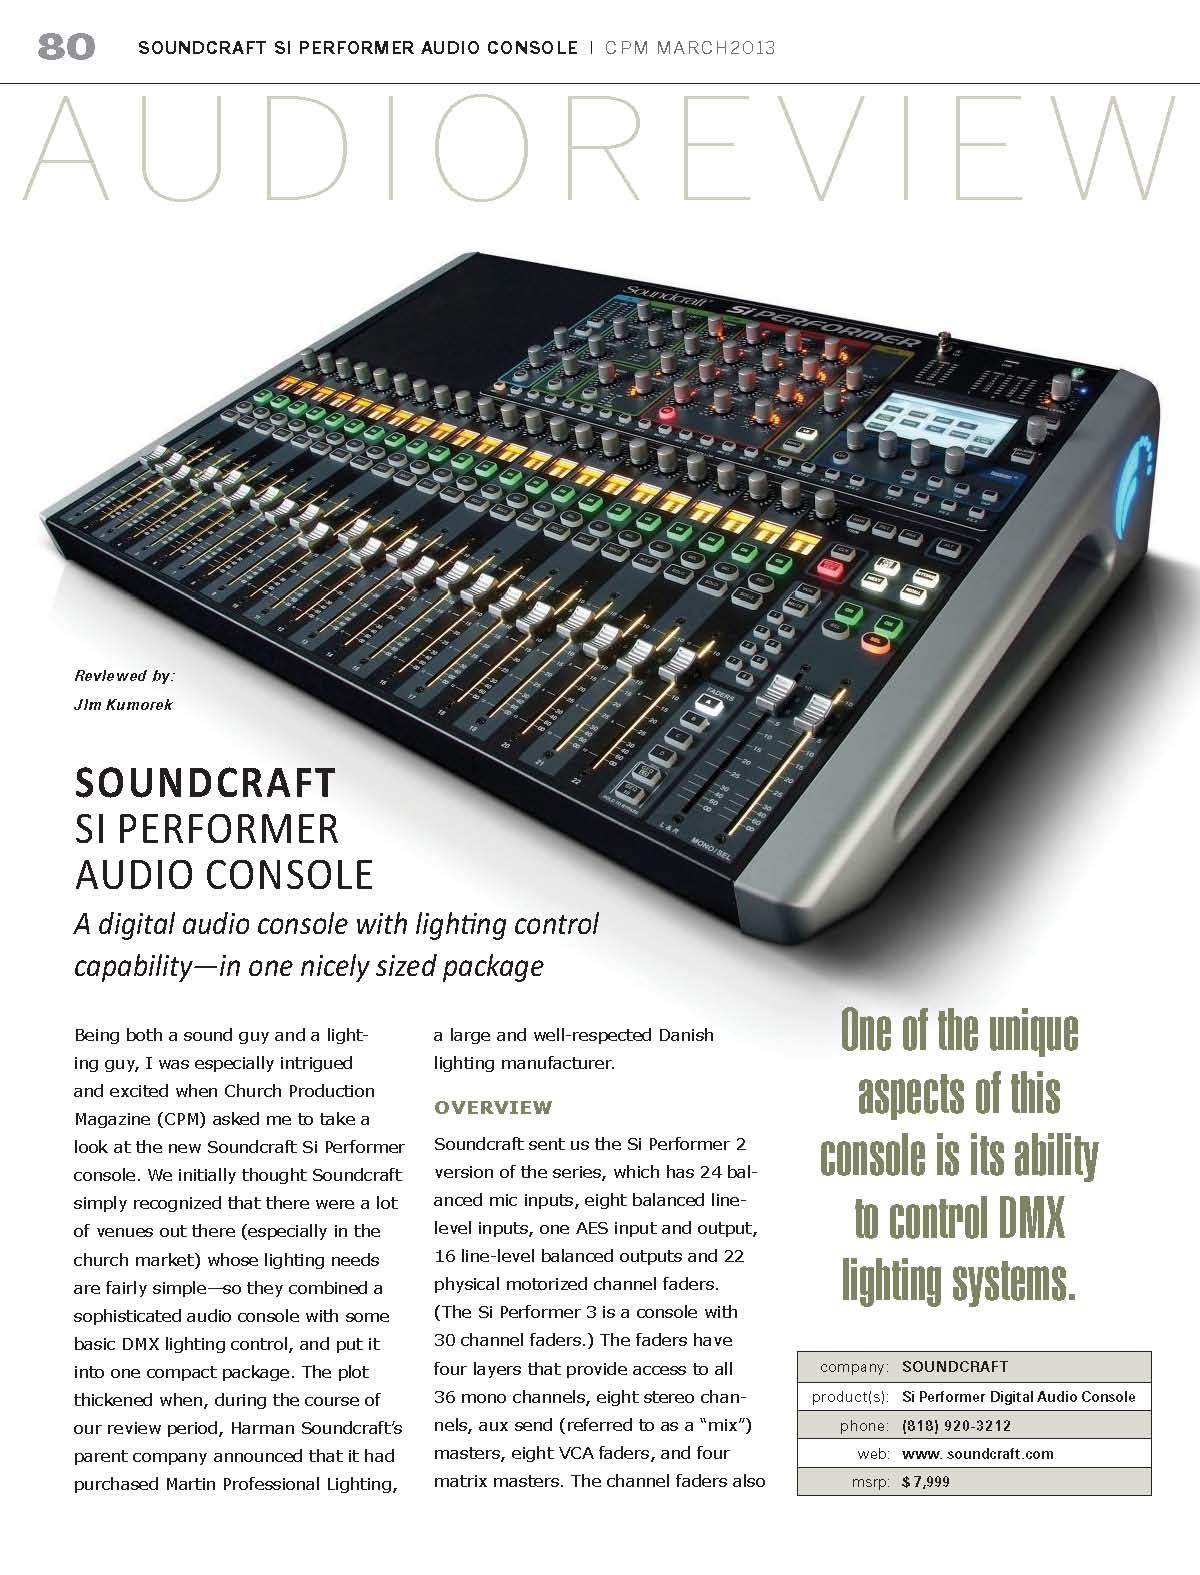 Harman Luxury Audio News: Pick Of The Hits - Soundcraft In Church Production Magazine, March 2013